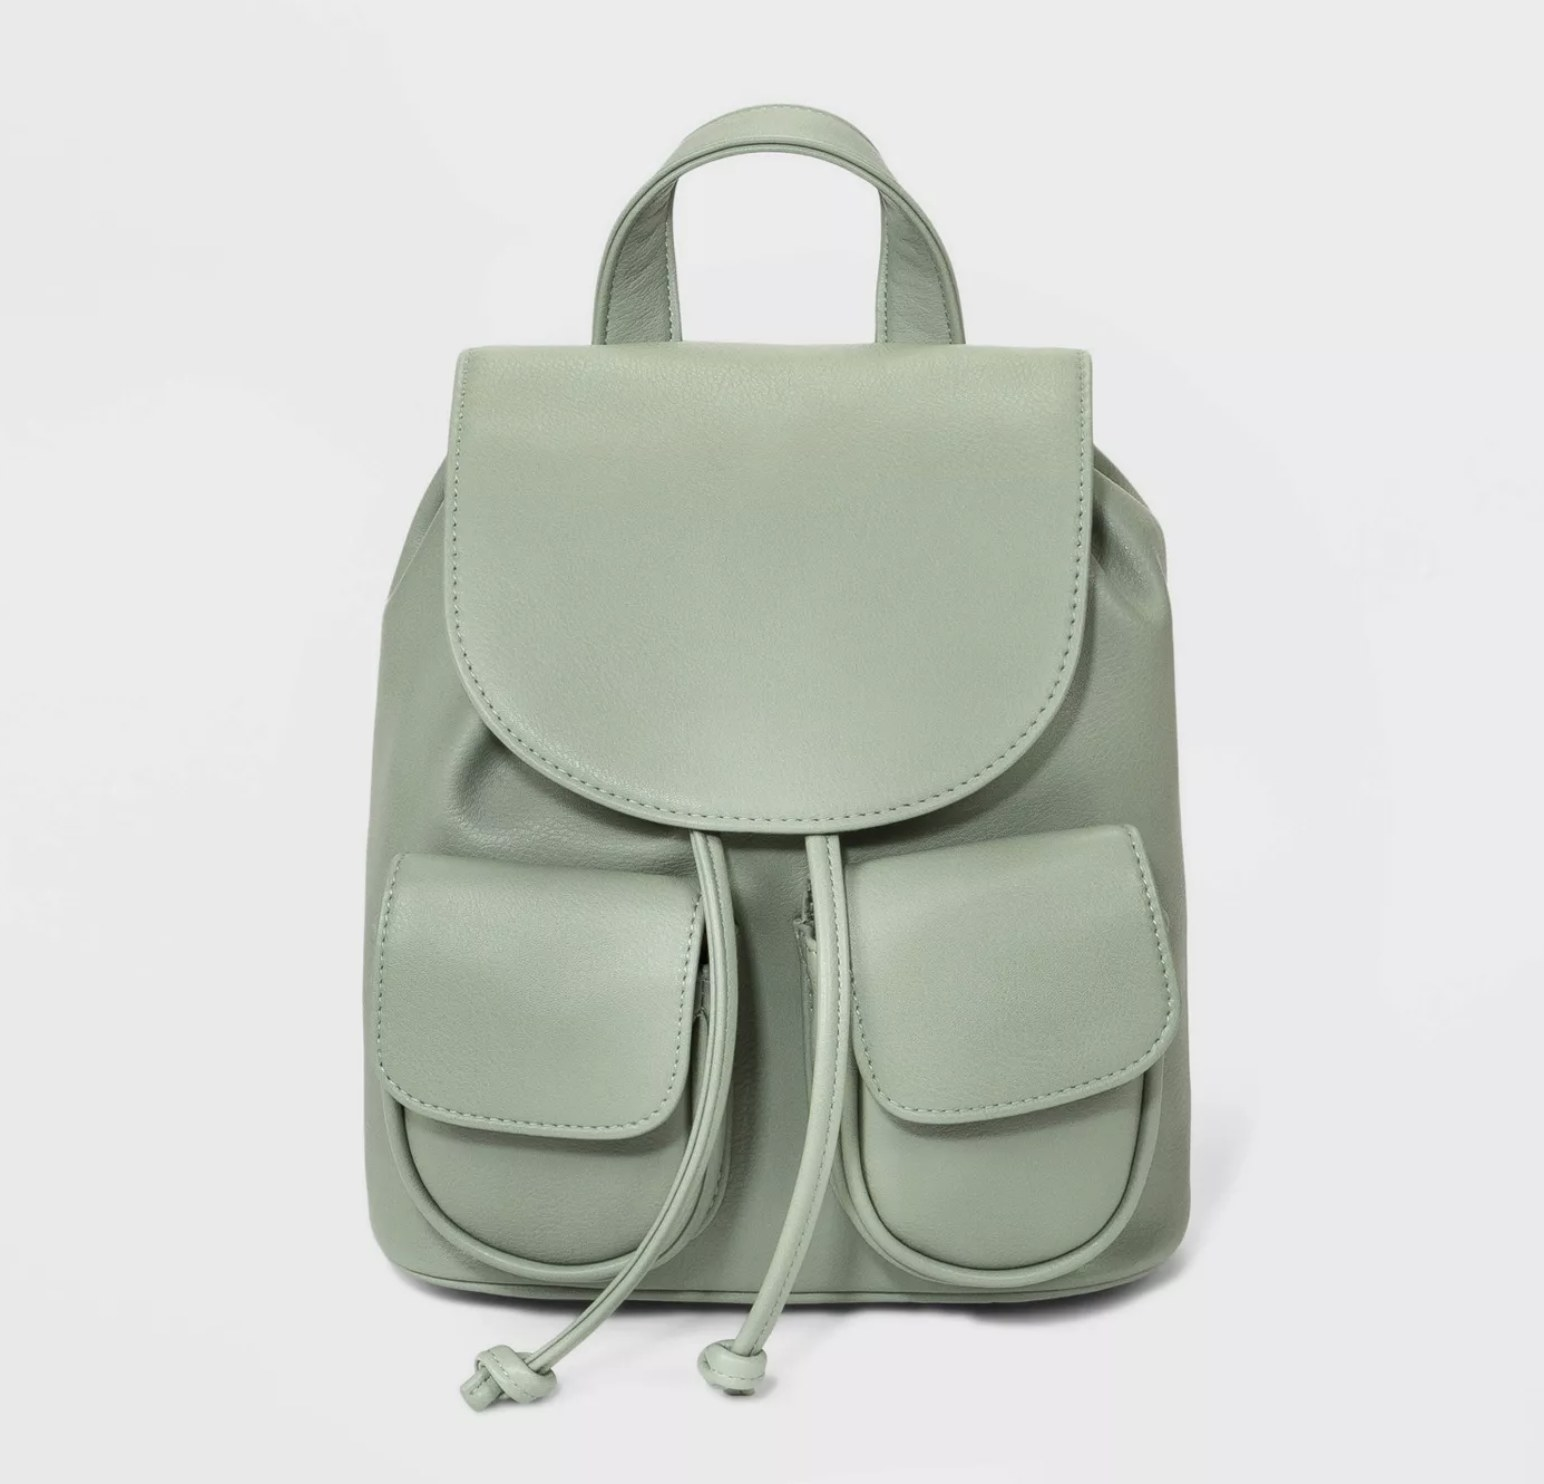 A mint green mini backpack with a flap opening and two pockets in the front